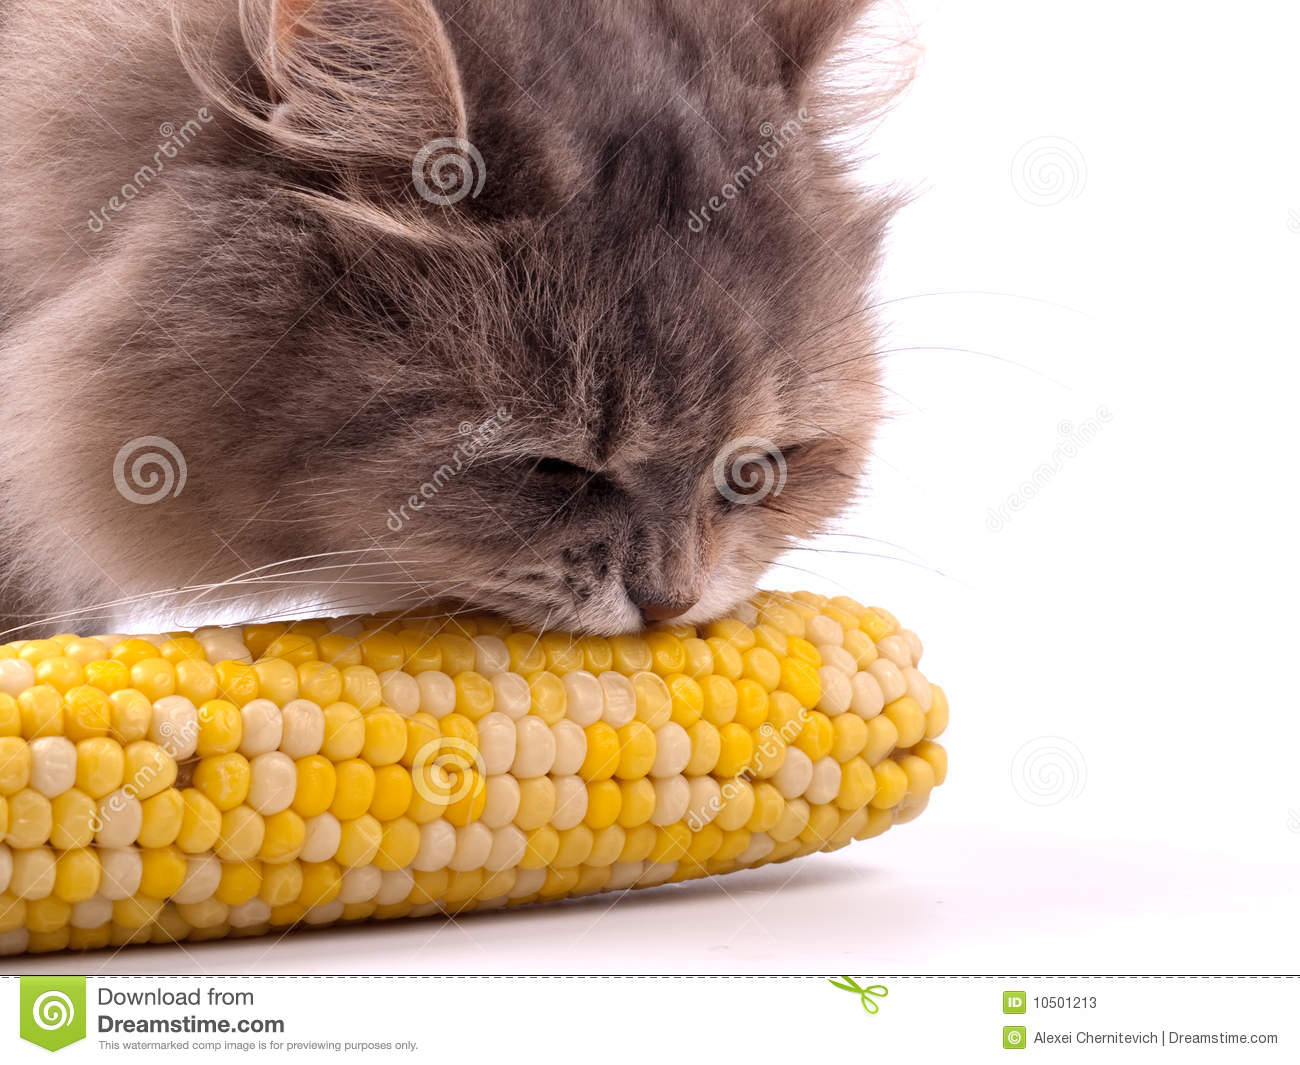 Cat Eating Corn On The Cob Video